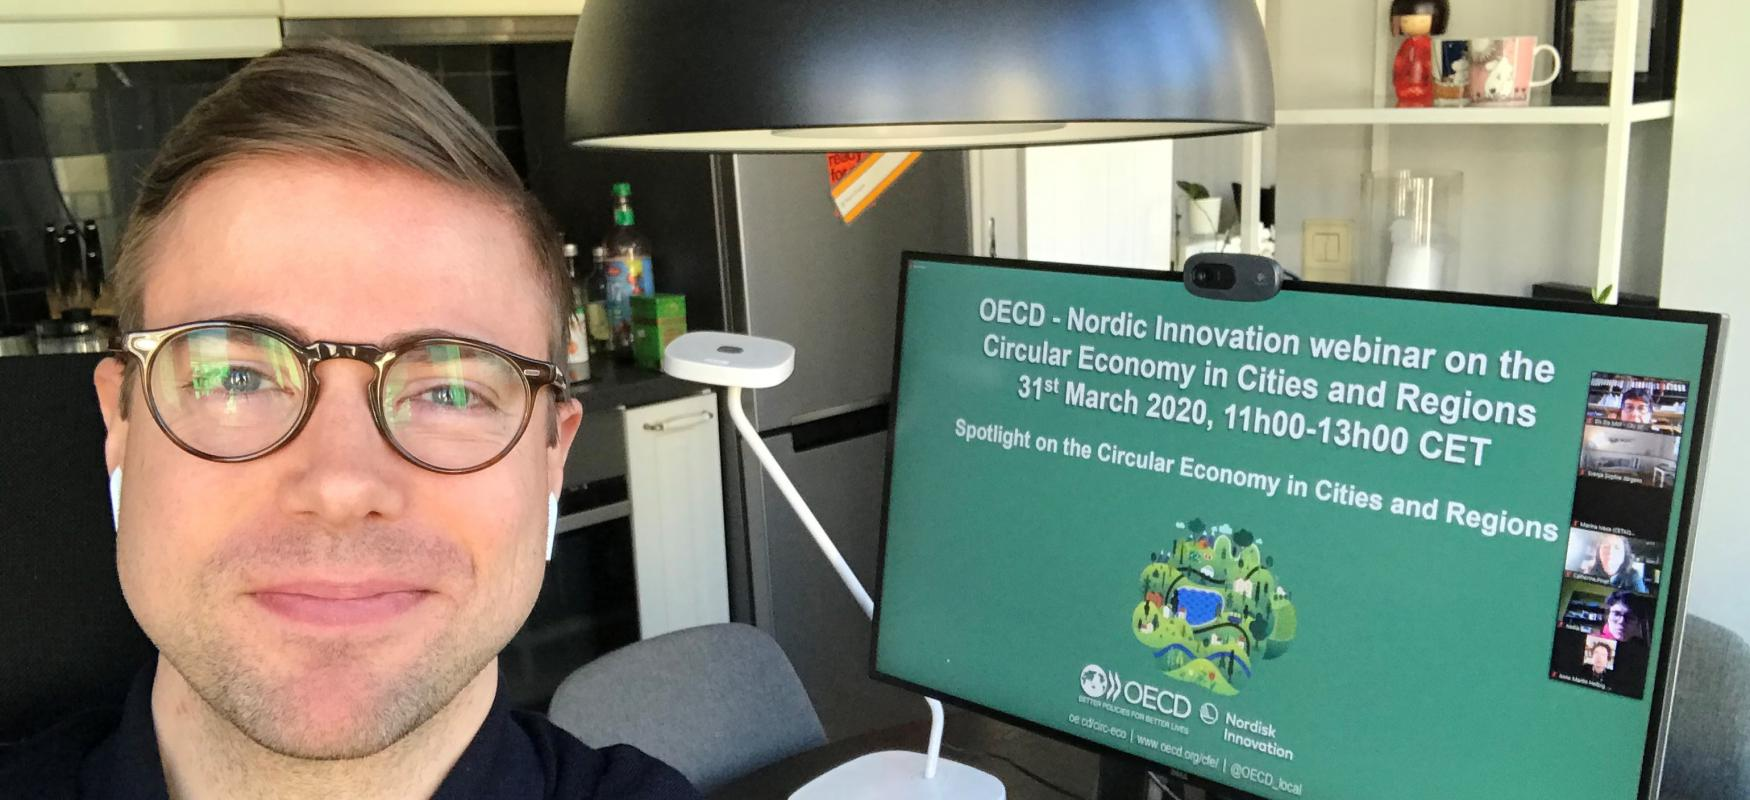 Senior innovation adviser at Nordic Innovation, Elis benediktsson in front of a computer screen displaying an image of the OECD and Nordic Innovation webinar 31 march 2020